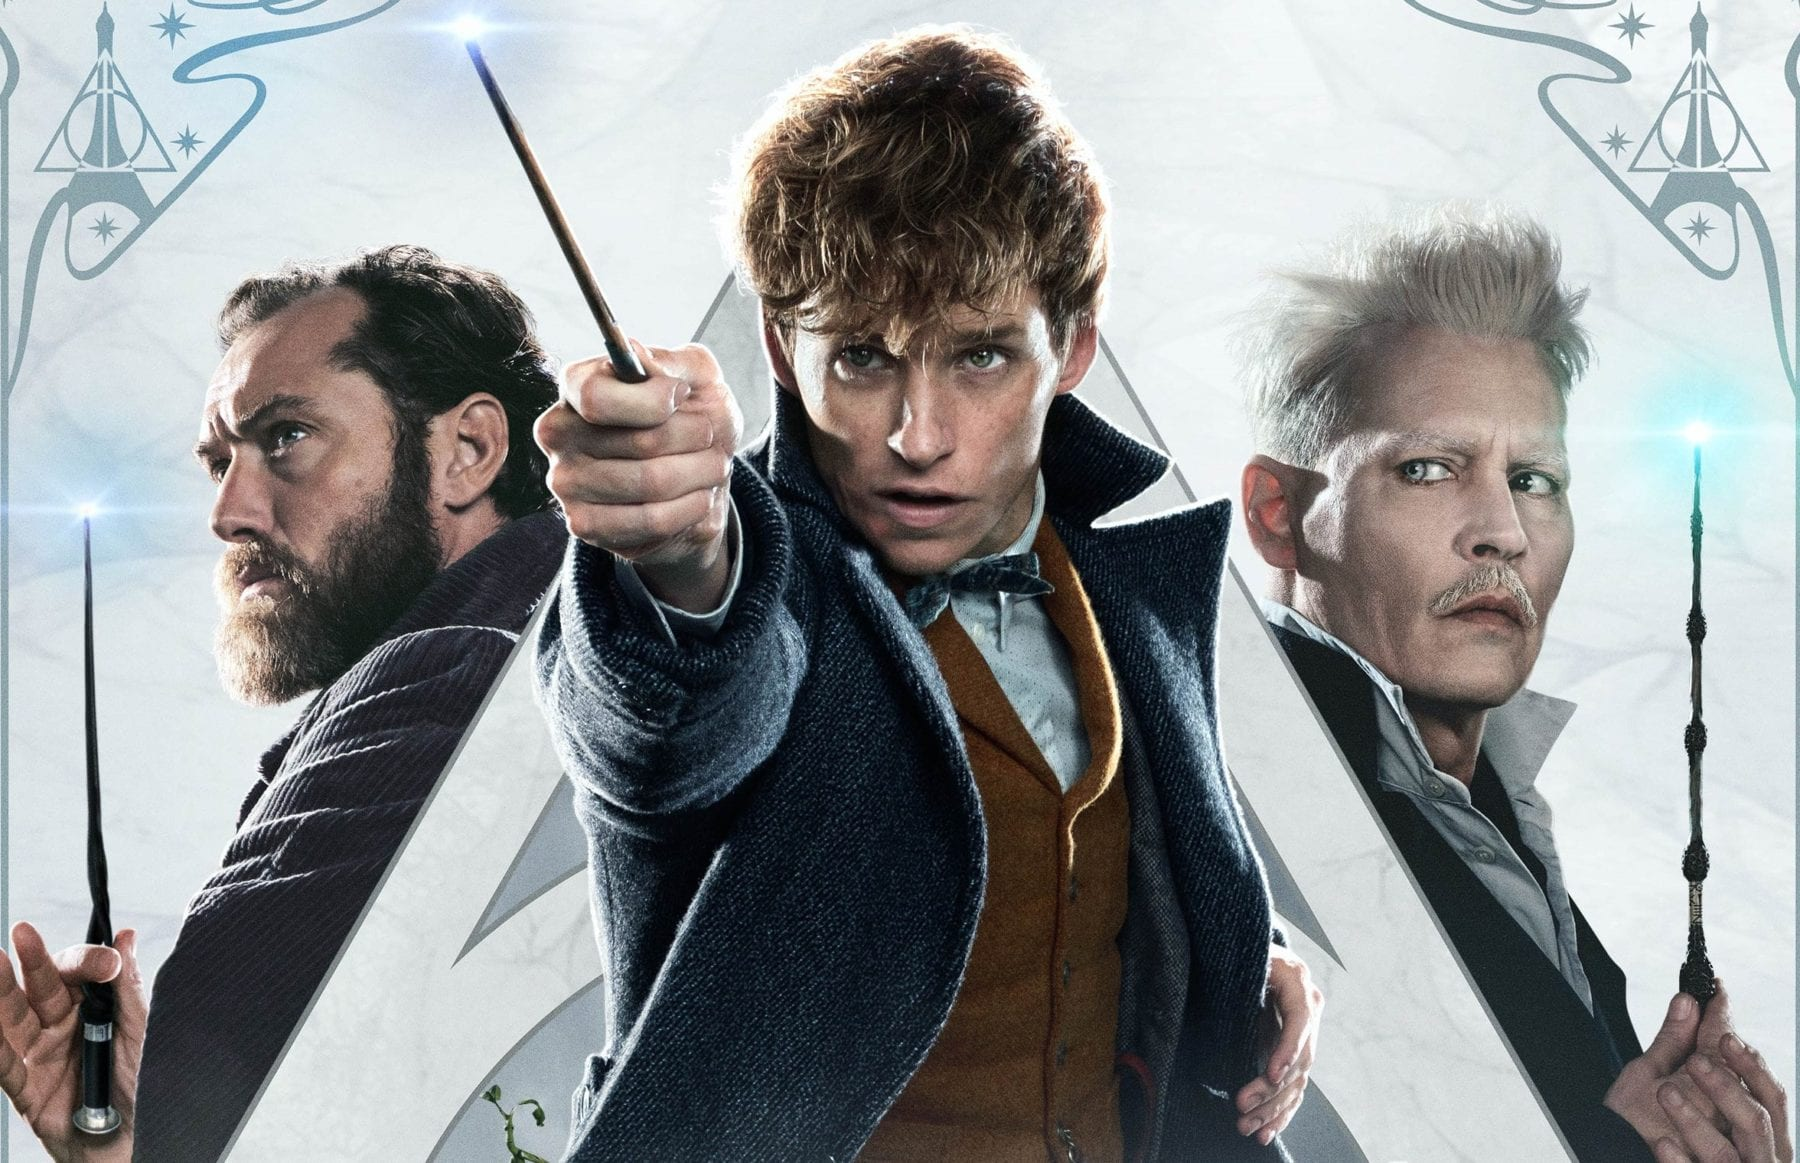 Fantastic Beasts 3 has officially started filming, confirms Eddie Redmayne